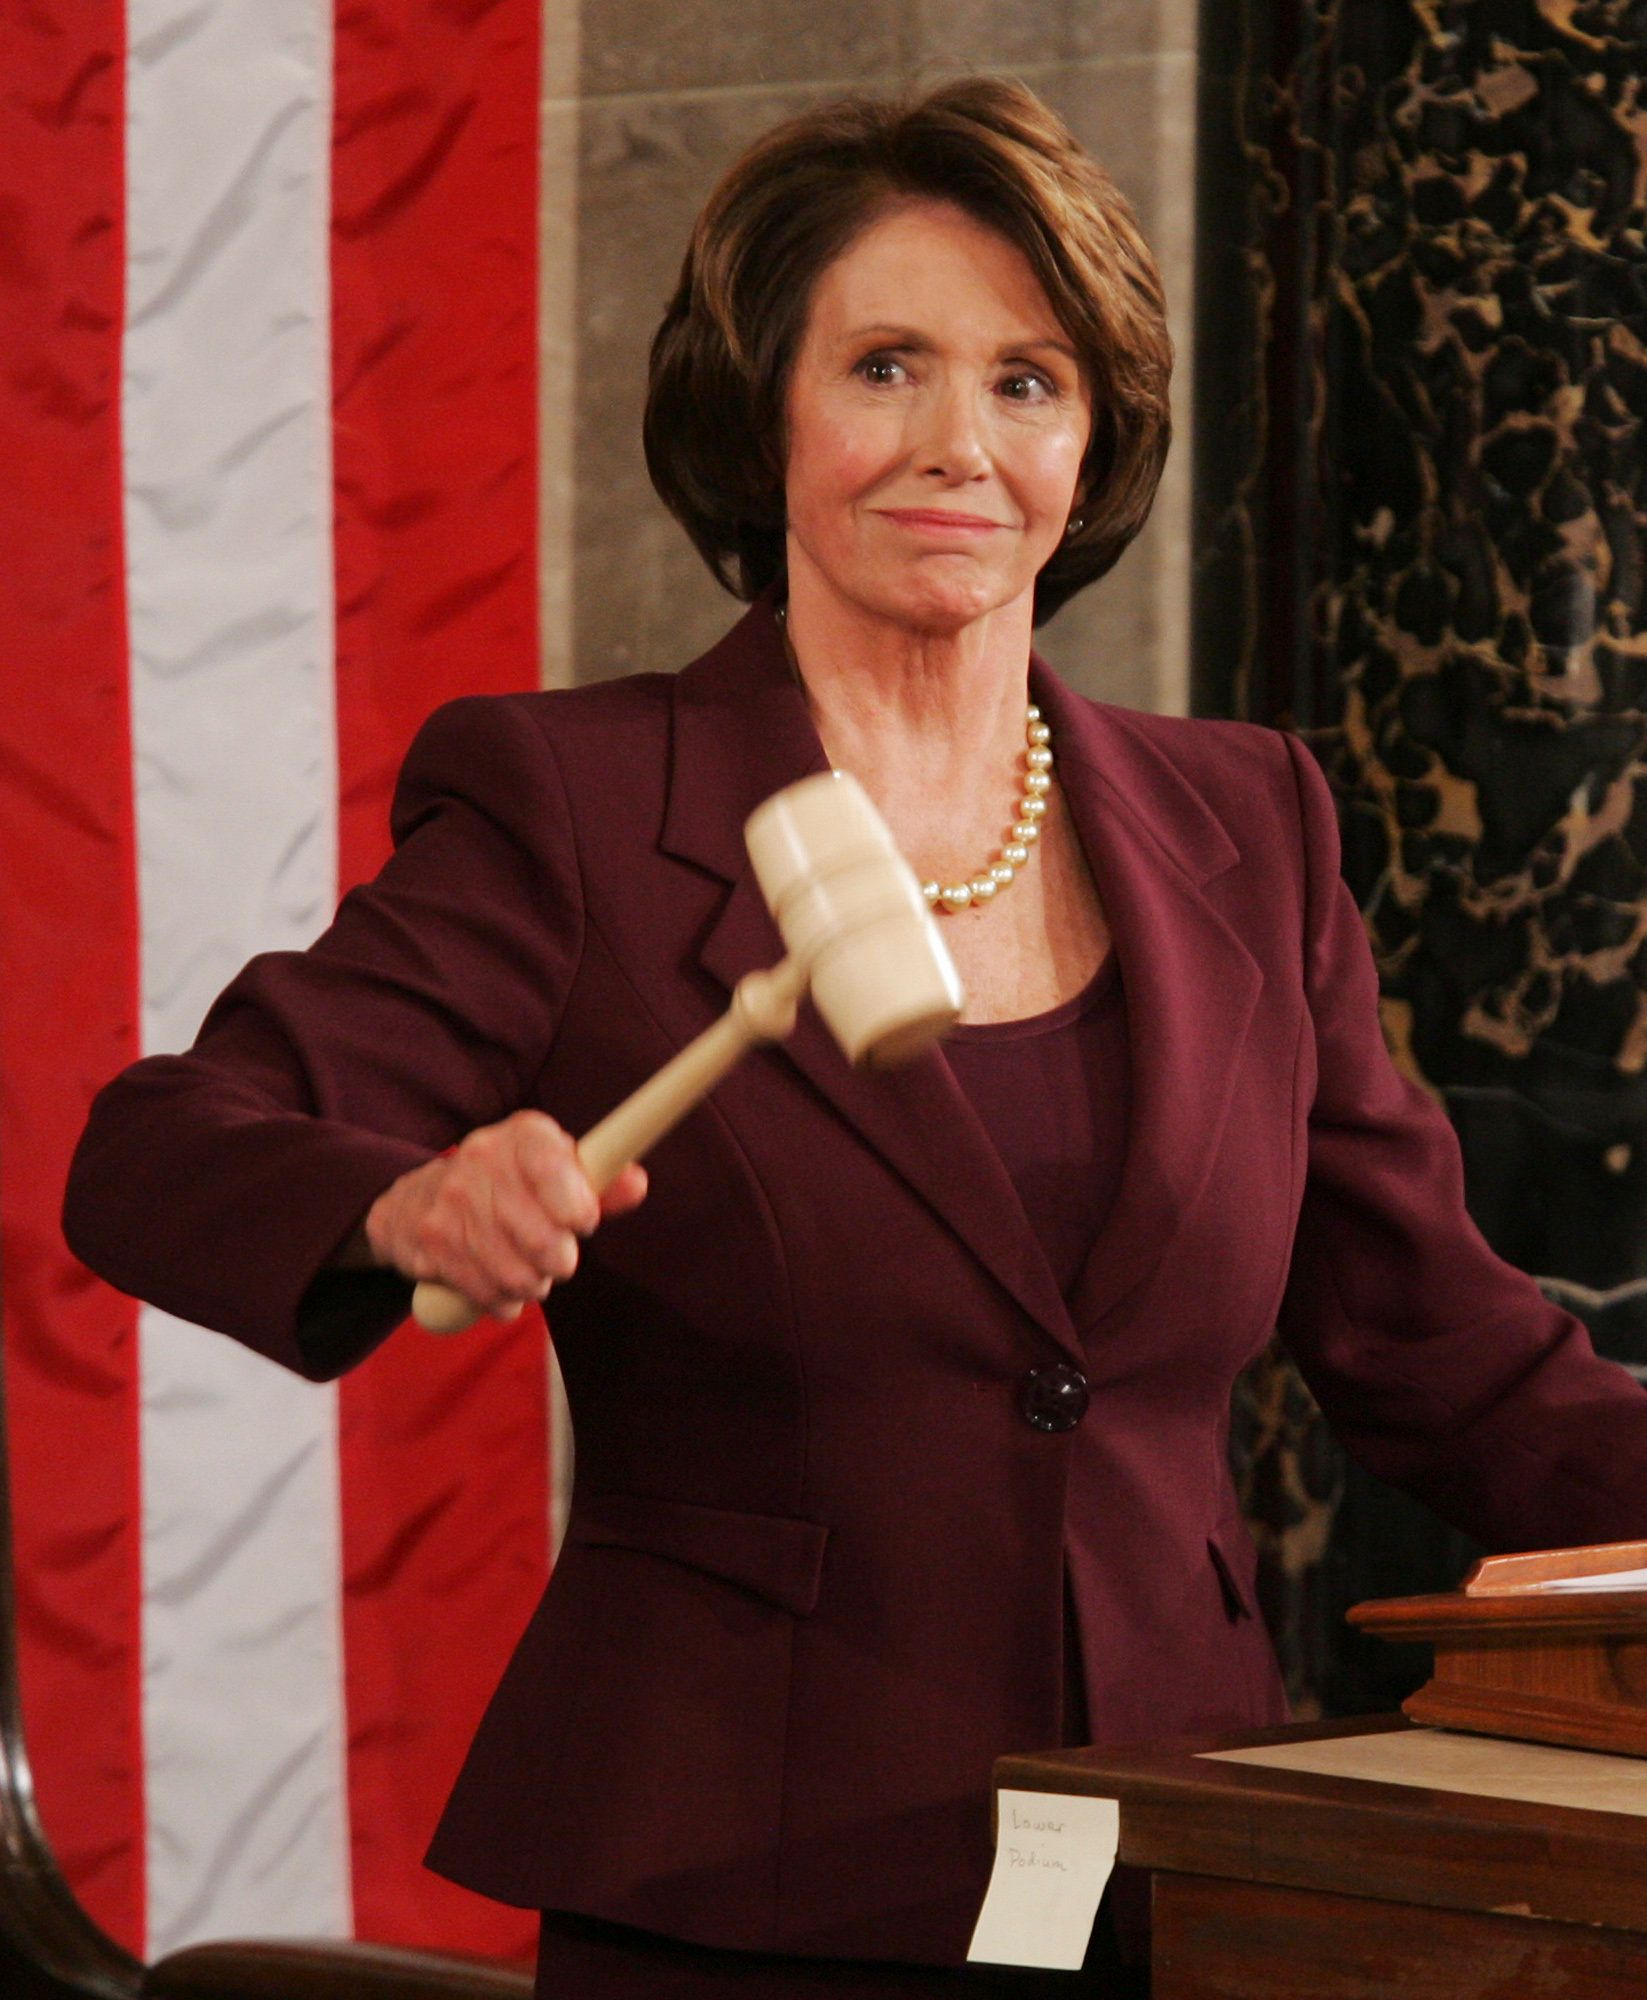 Rep. Nancy Pelosi (D-Calif.) wields the gavel in 2007 as the first woman to serve as speaker of the House.